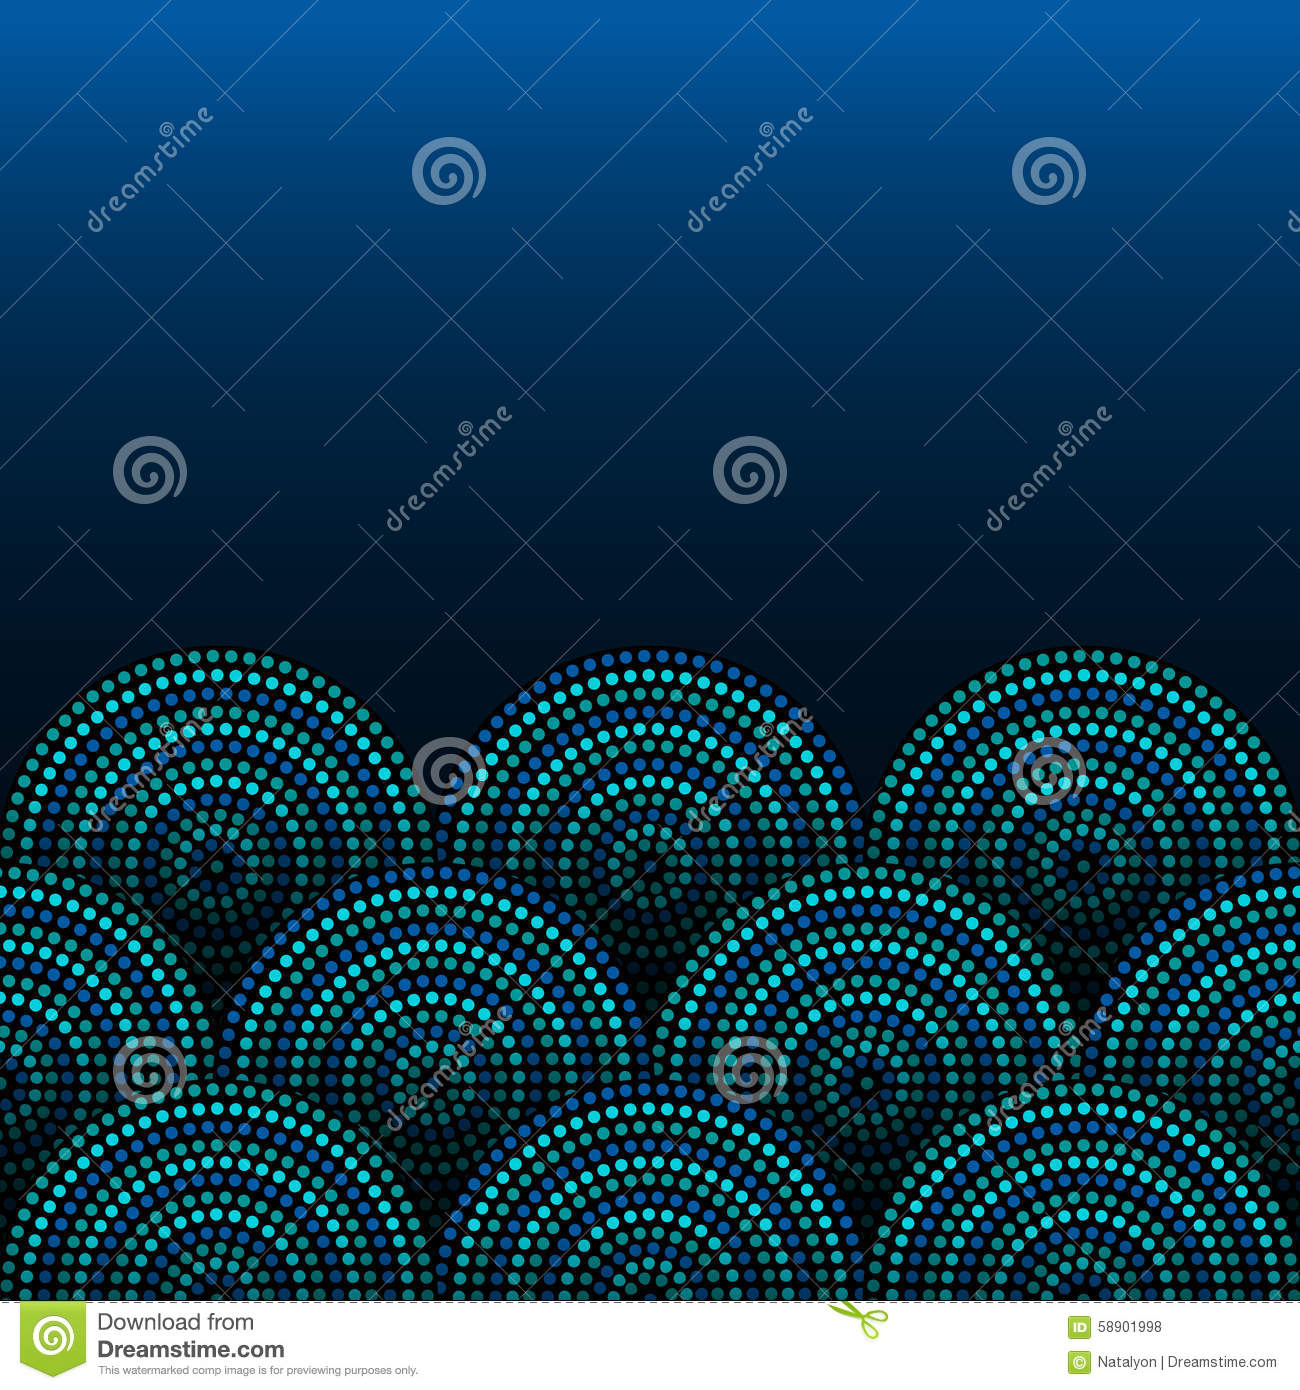 Australian aboriginal geometric art concentric circles seamless royalty free vector download australian aboriginal geometric art toneelgroepblik Image collections